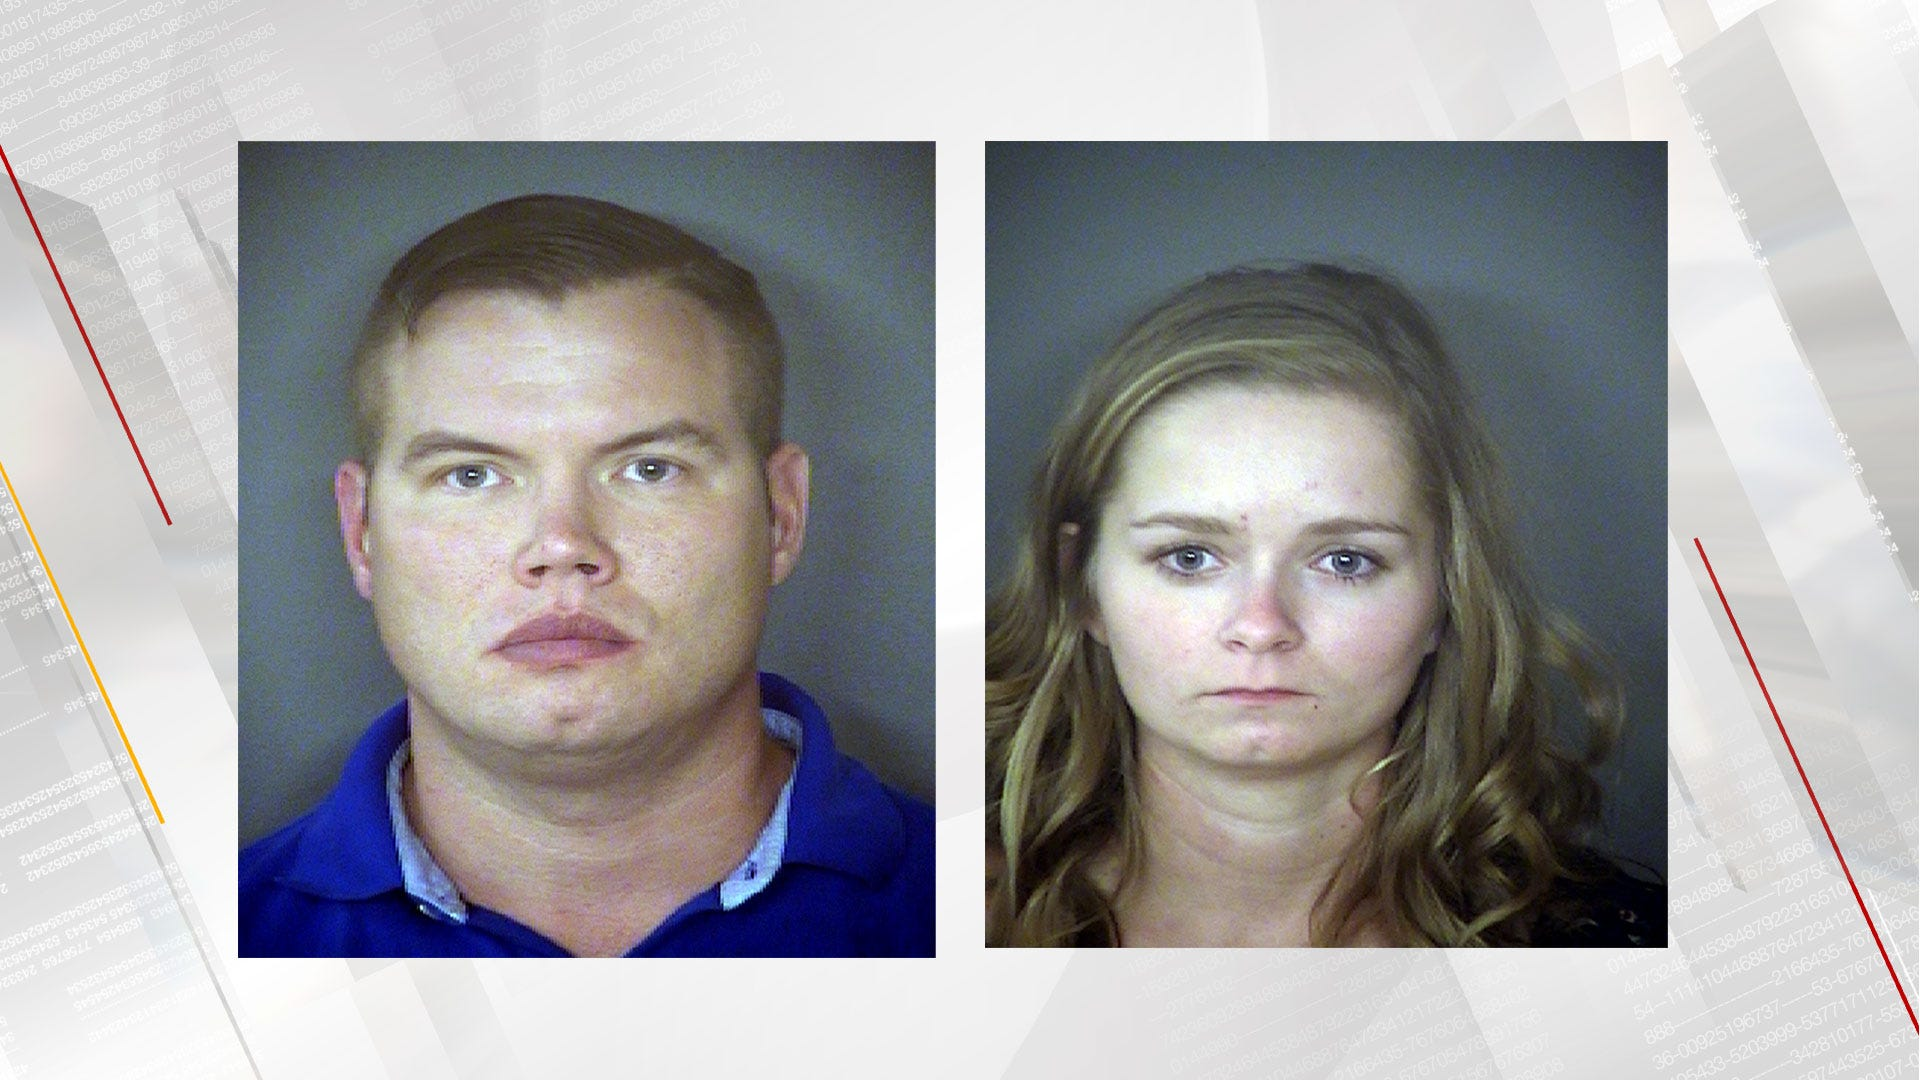 Warrant: Punished Texas Child Forced To Brush Teeth With Cat Feces